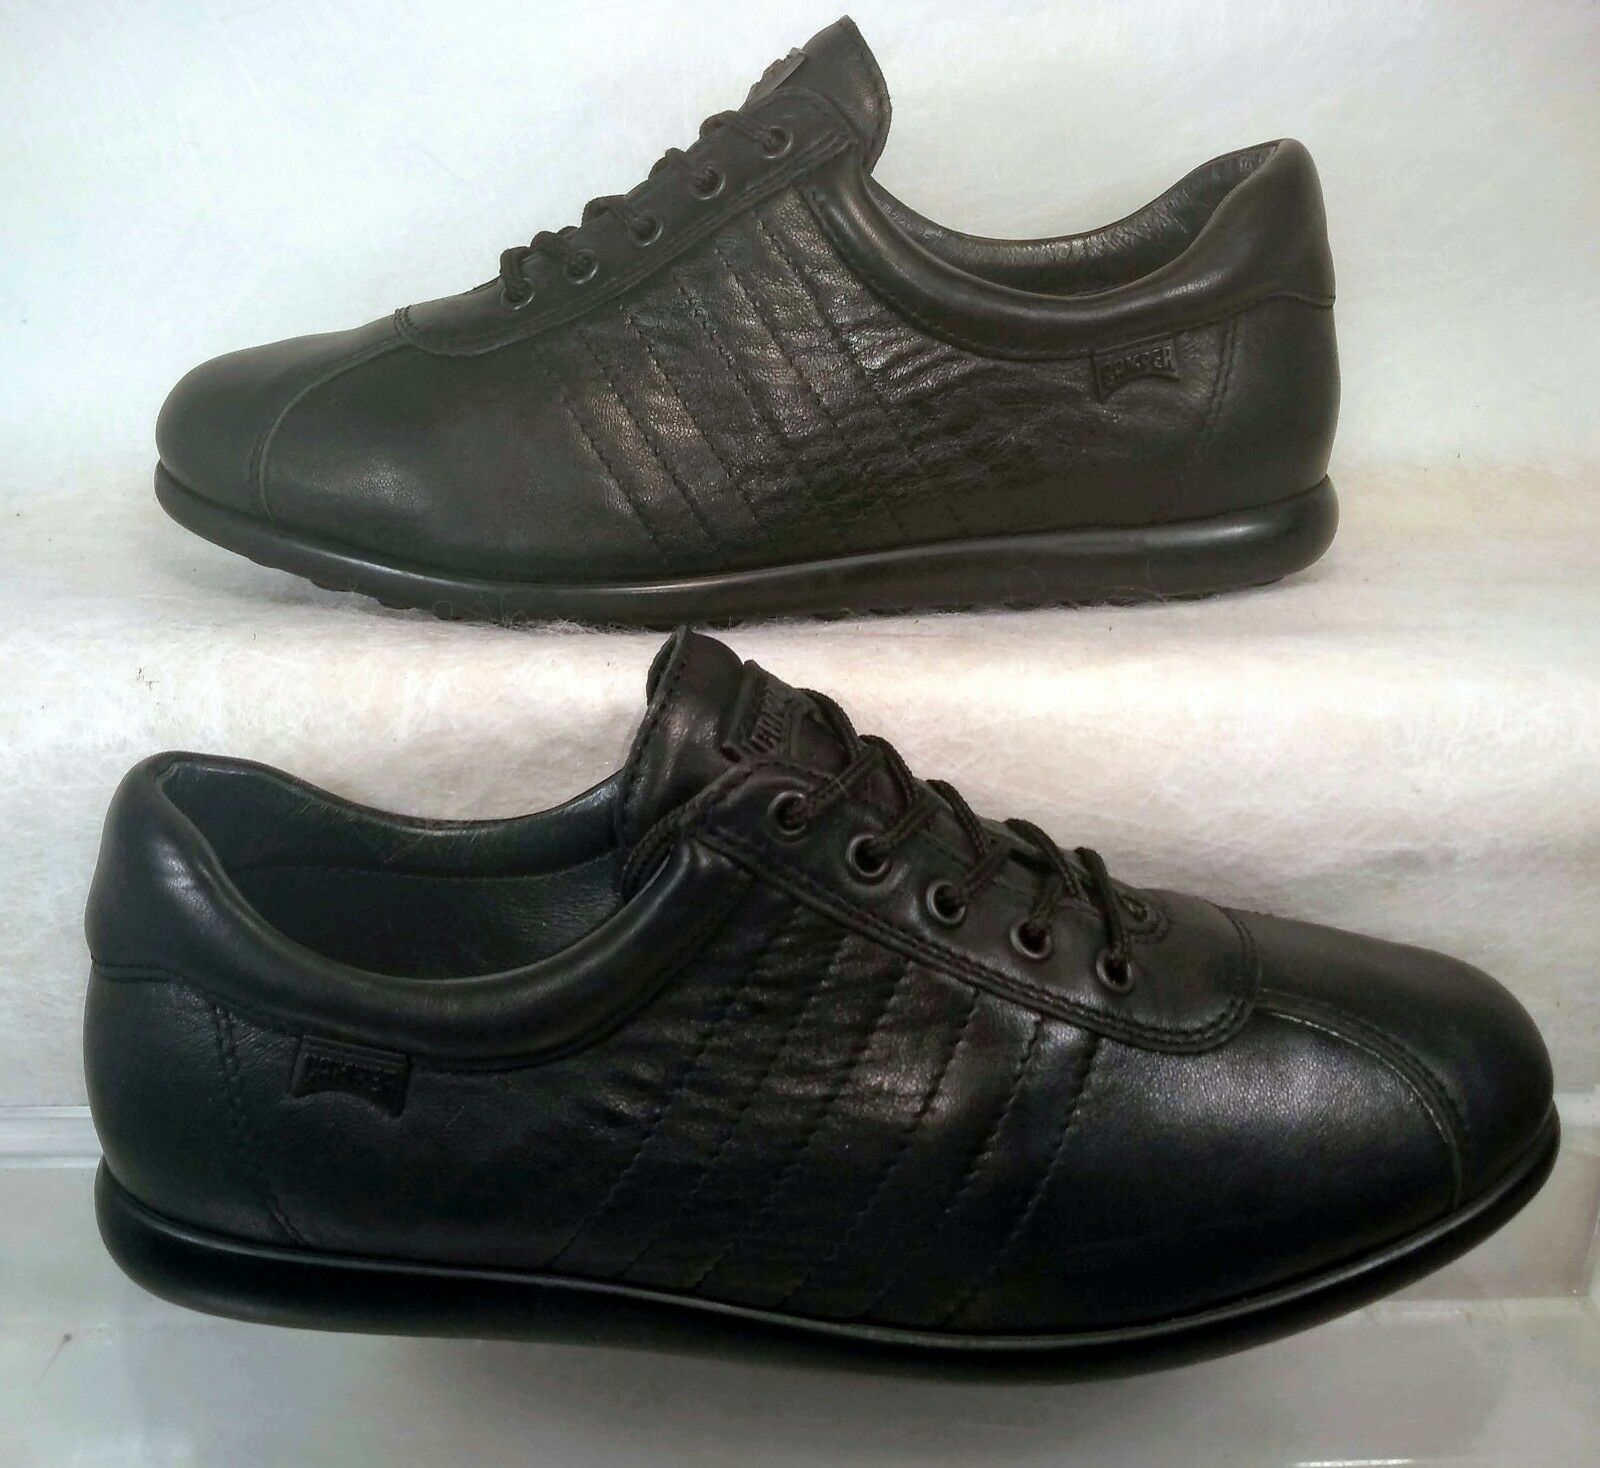 87866bab ... Camper Pelotas Ariel Casual Lace Up Up Up Black Sneakers Women US 10 40  2ce45f ...